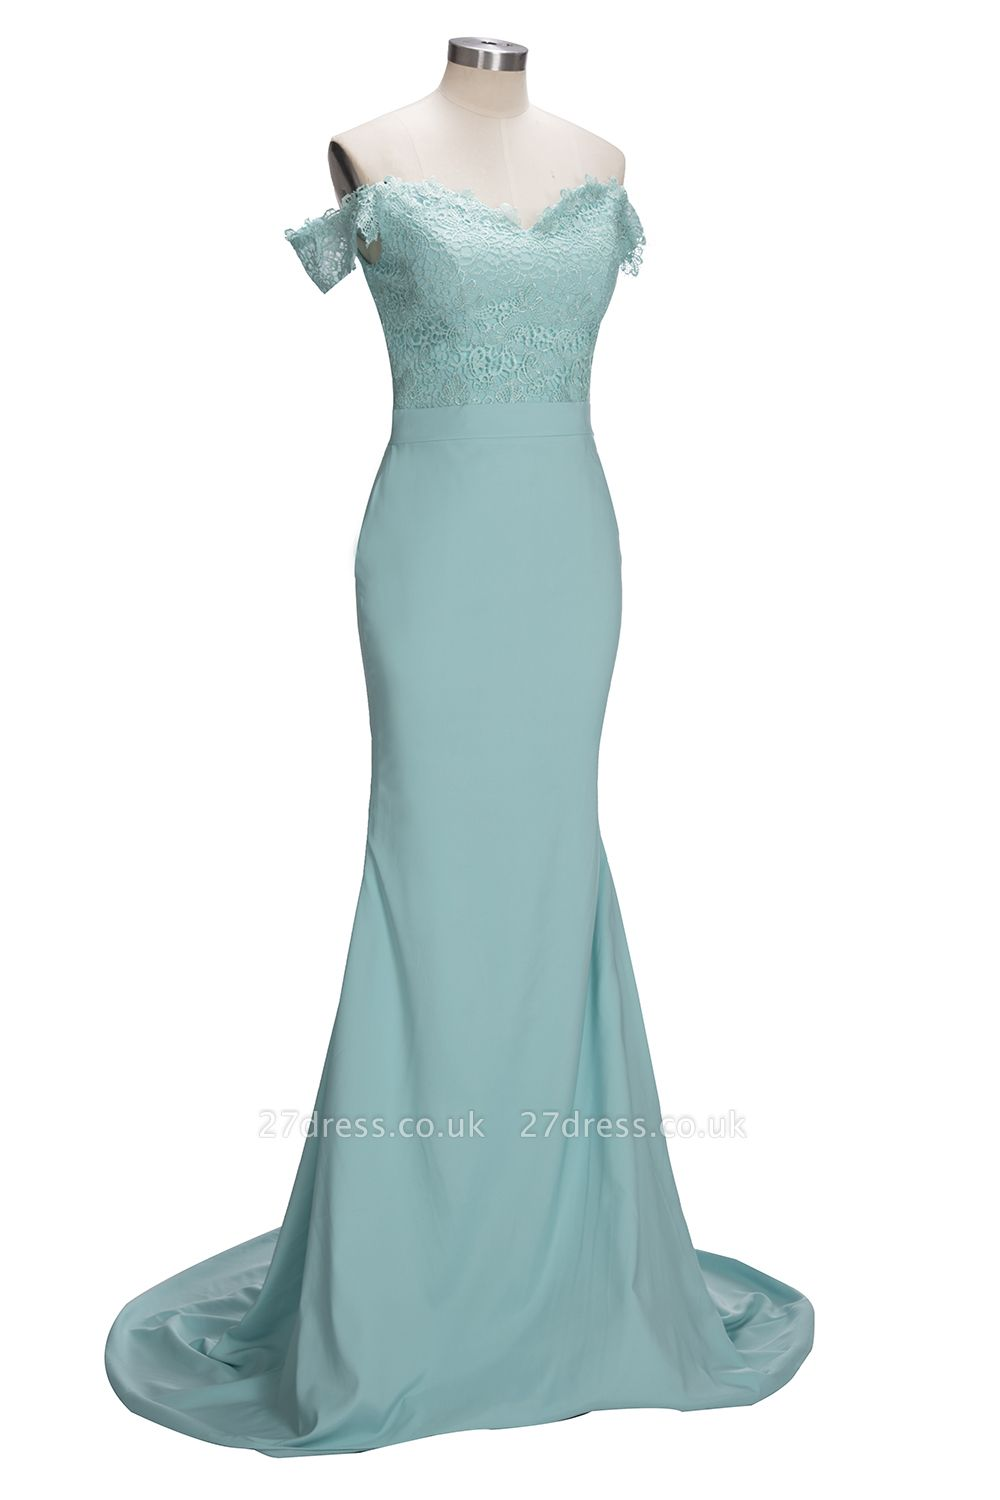 Long Mermaid Mint Lace Off-the-Shoulder Bridesmaid Dress UK